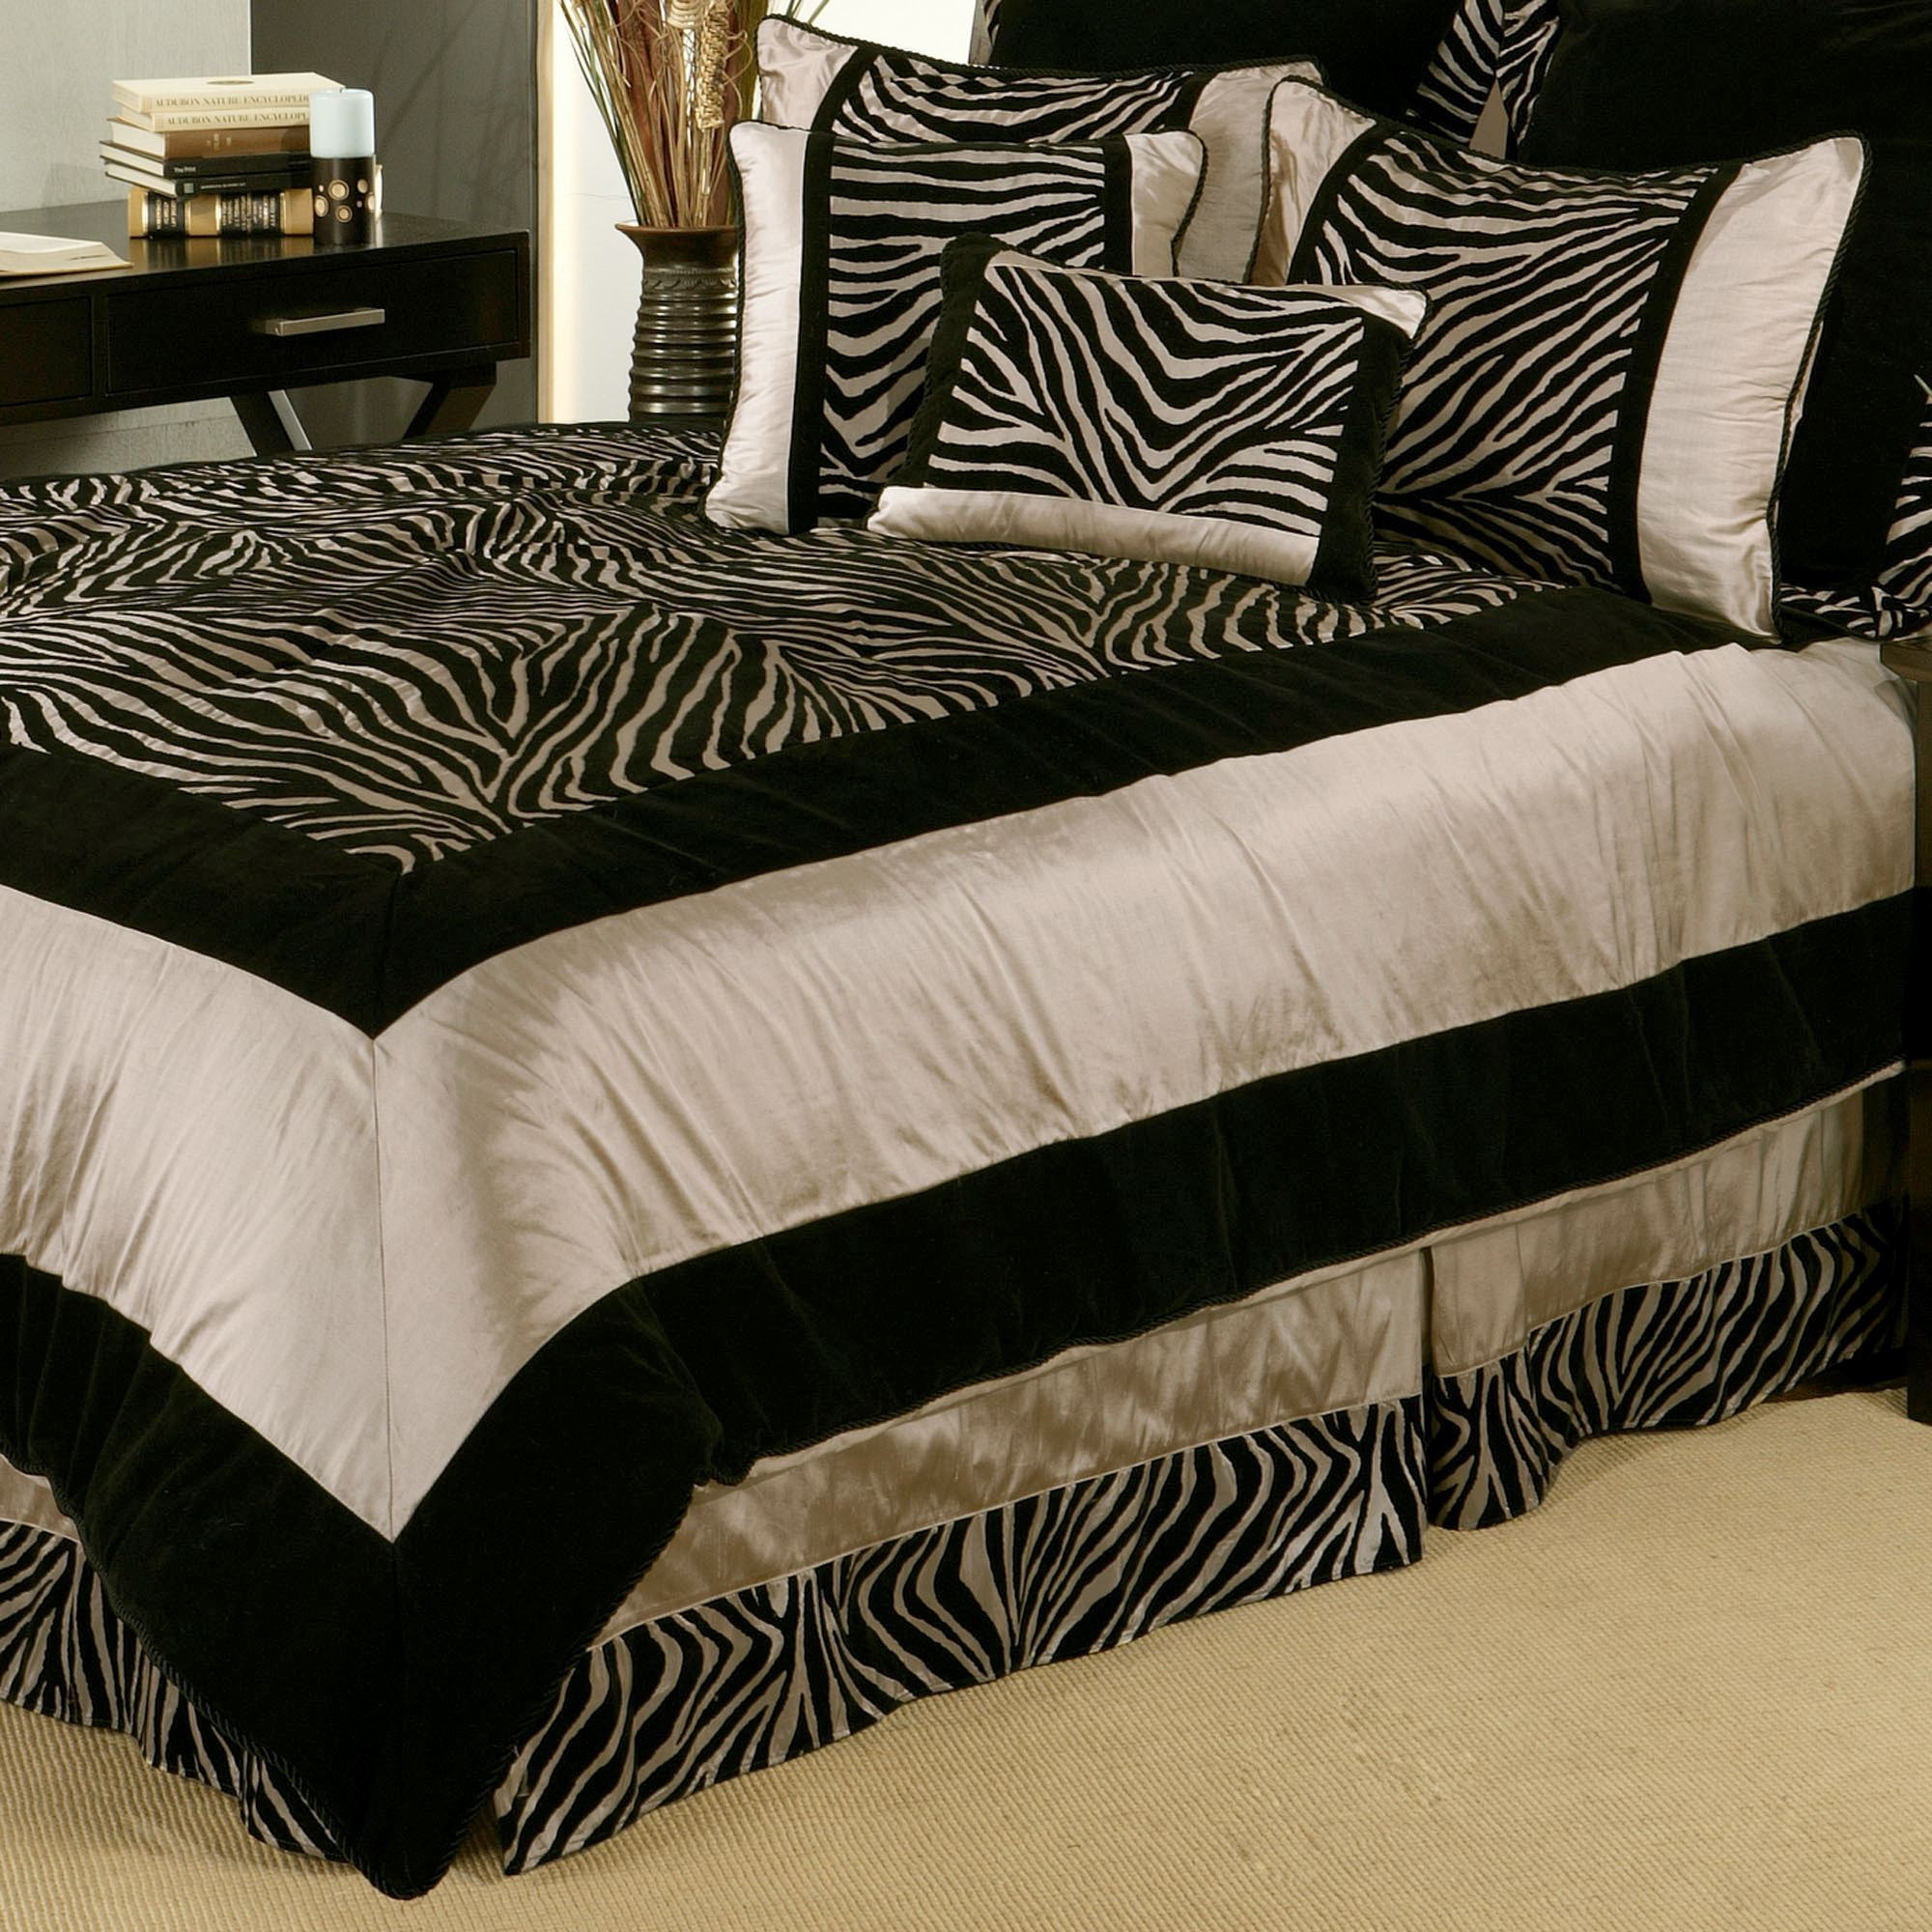 Zuma Comforter Bed Set. Touch To Zoom